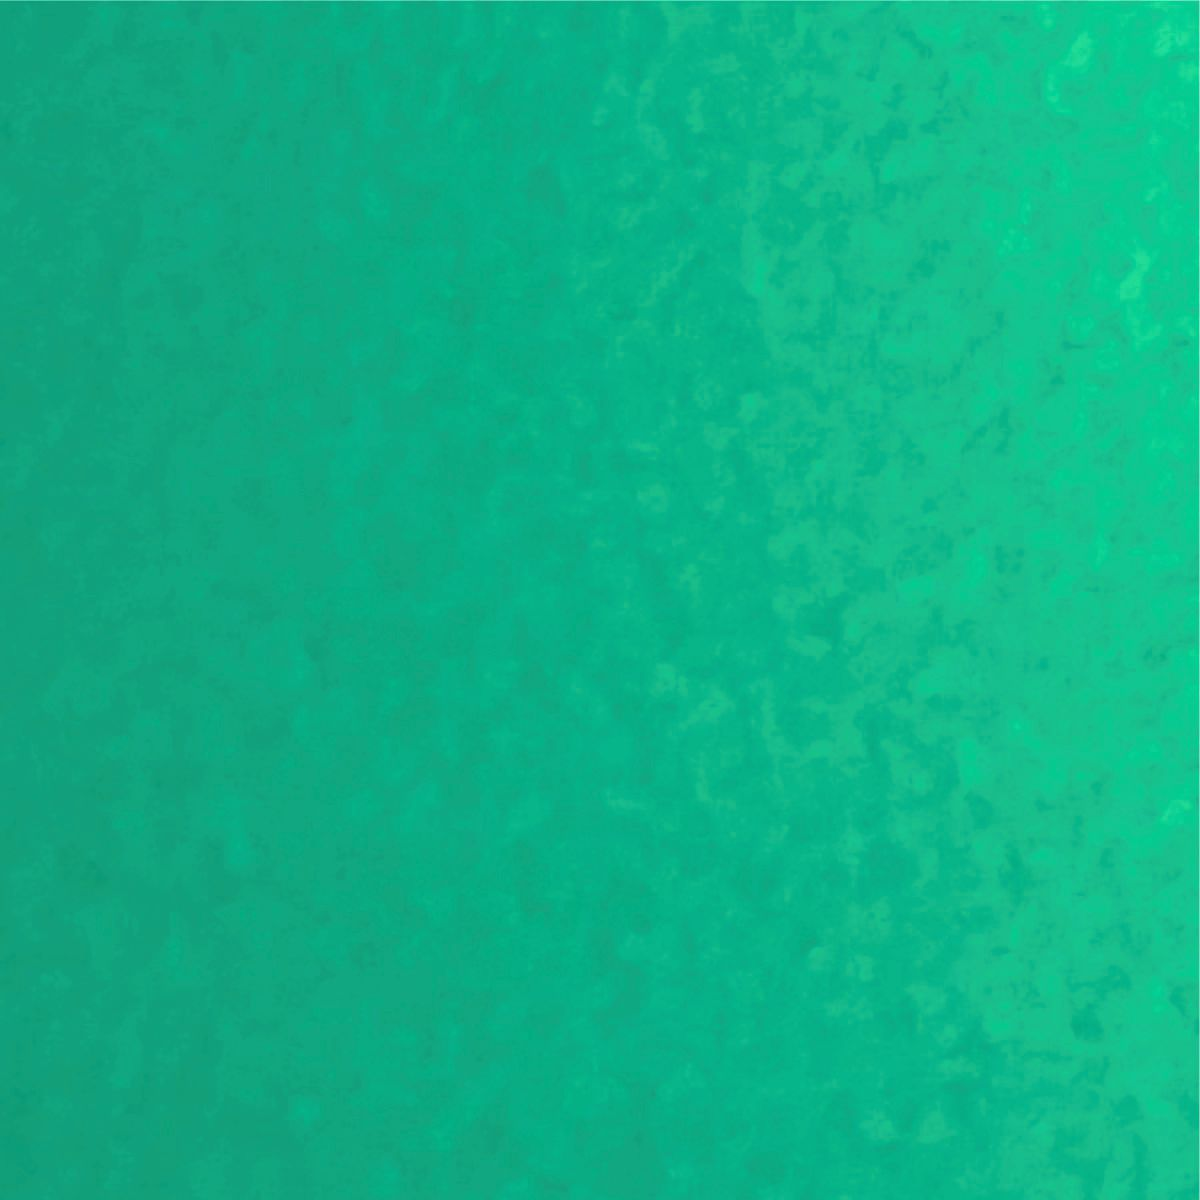 Siser 174 Easyweed 174 Electric Htv Teal Clearance